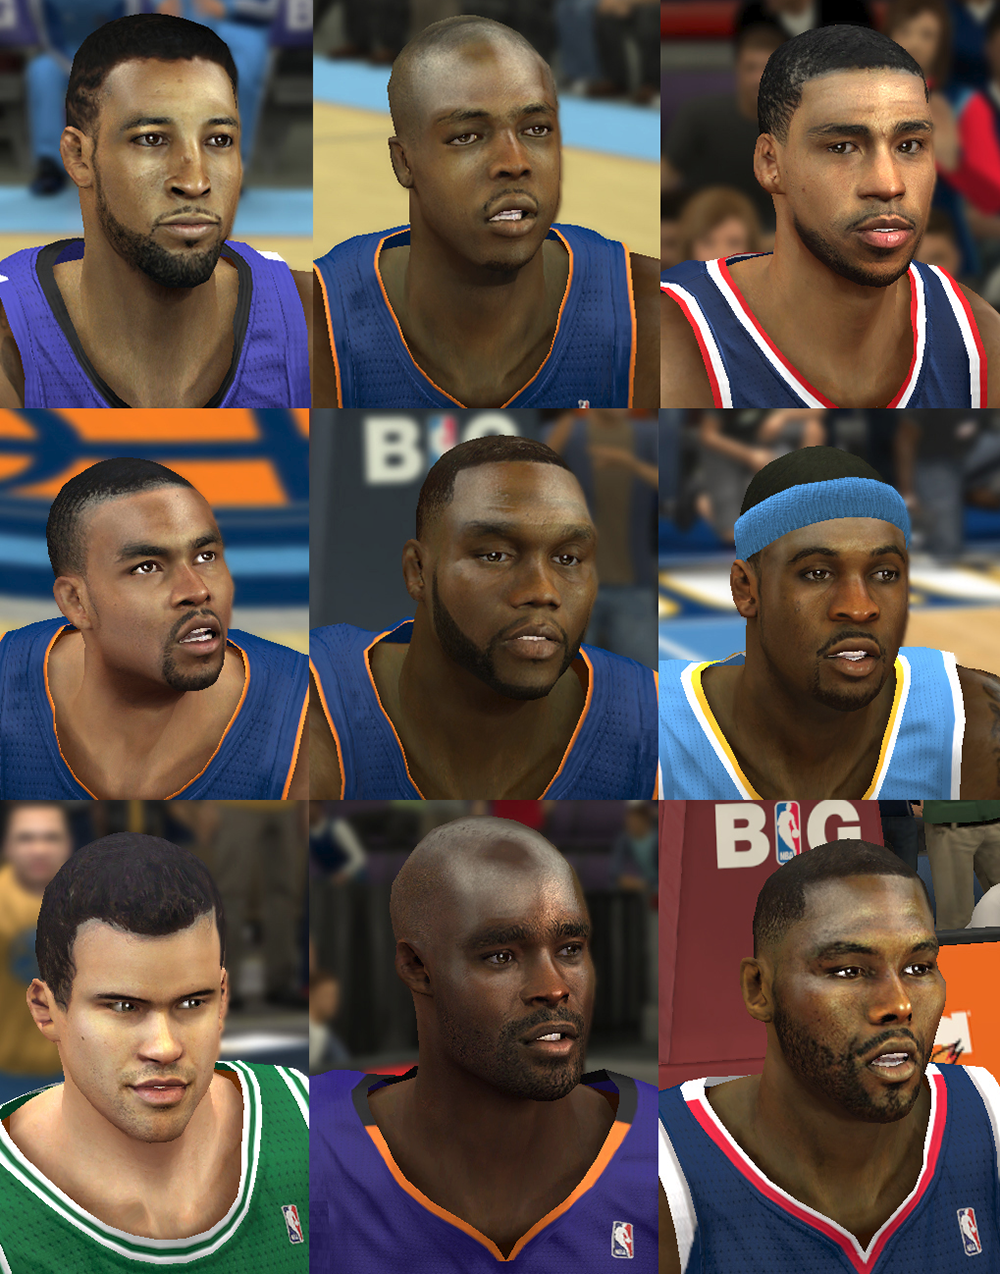 NBA 2K14 Mod Face Update Pack #1